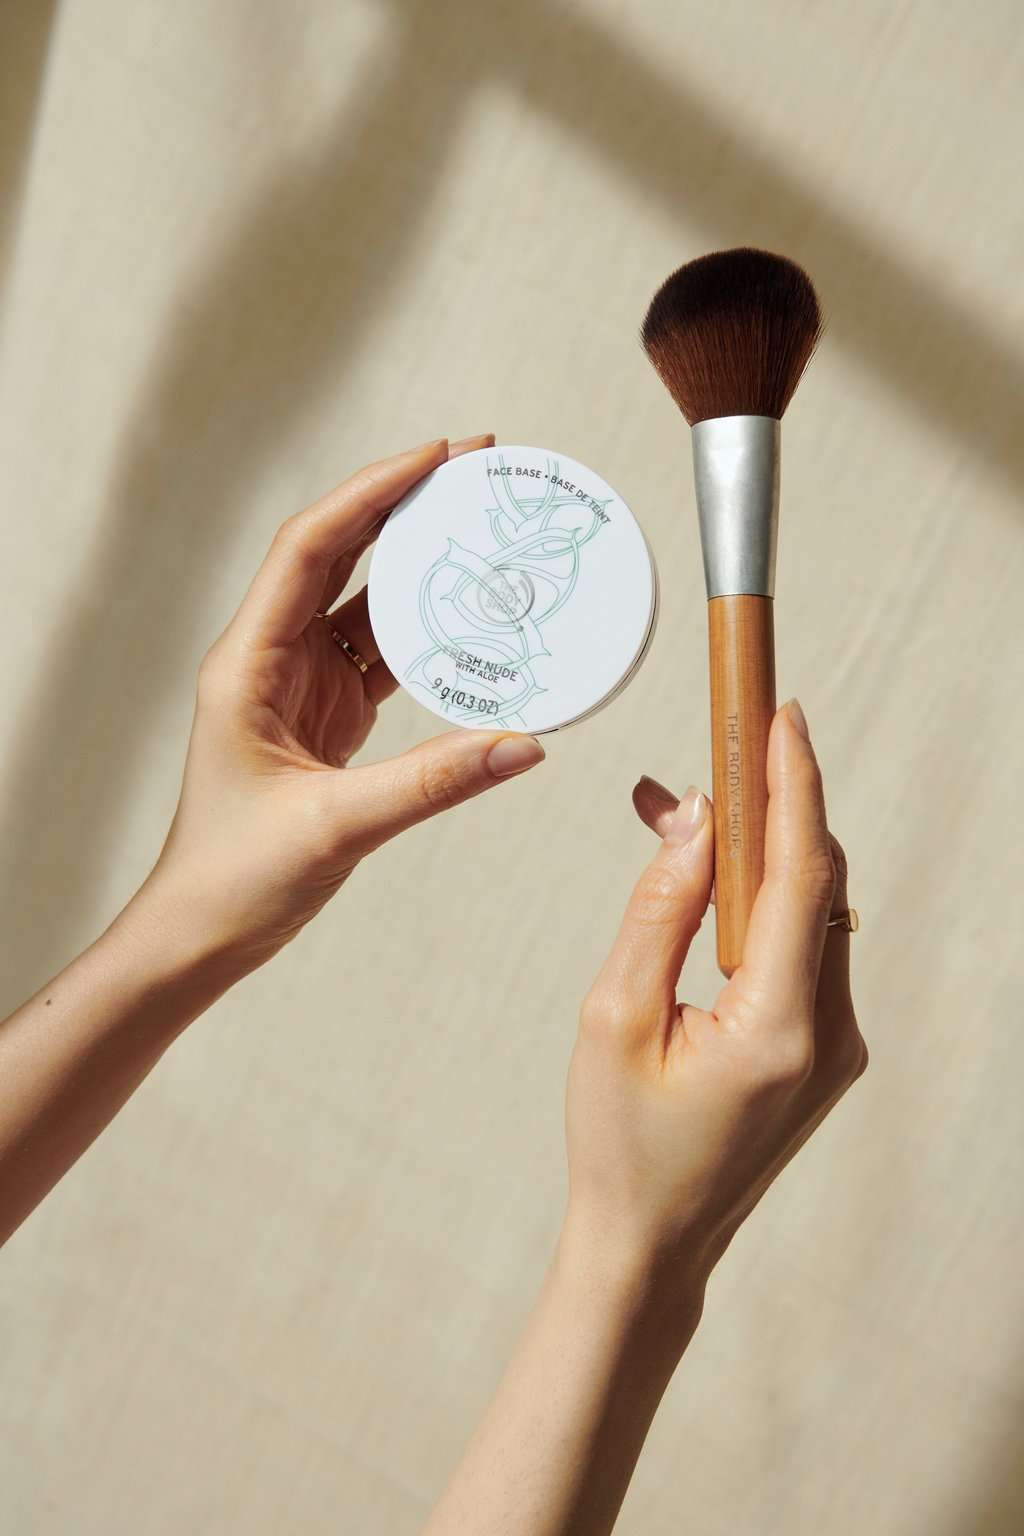 Hands holding The Body Shop Face Base and makeup brush